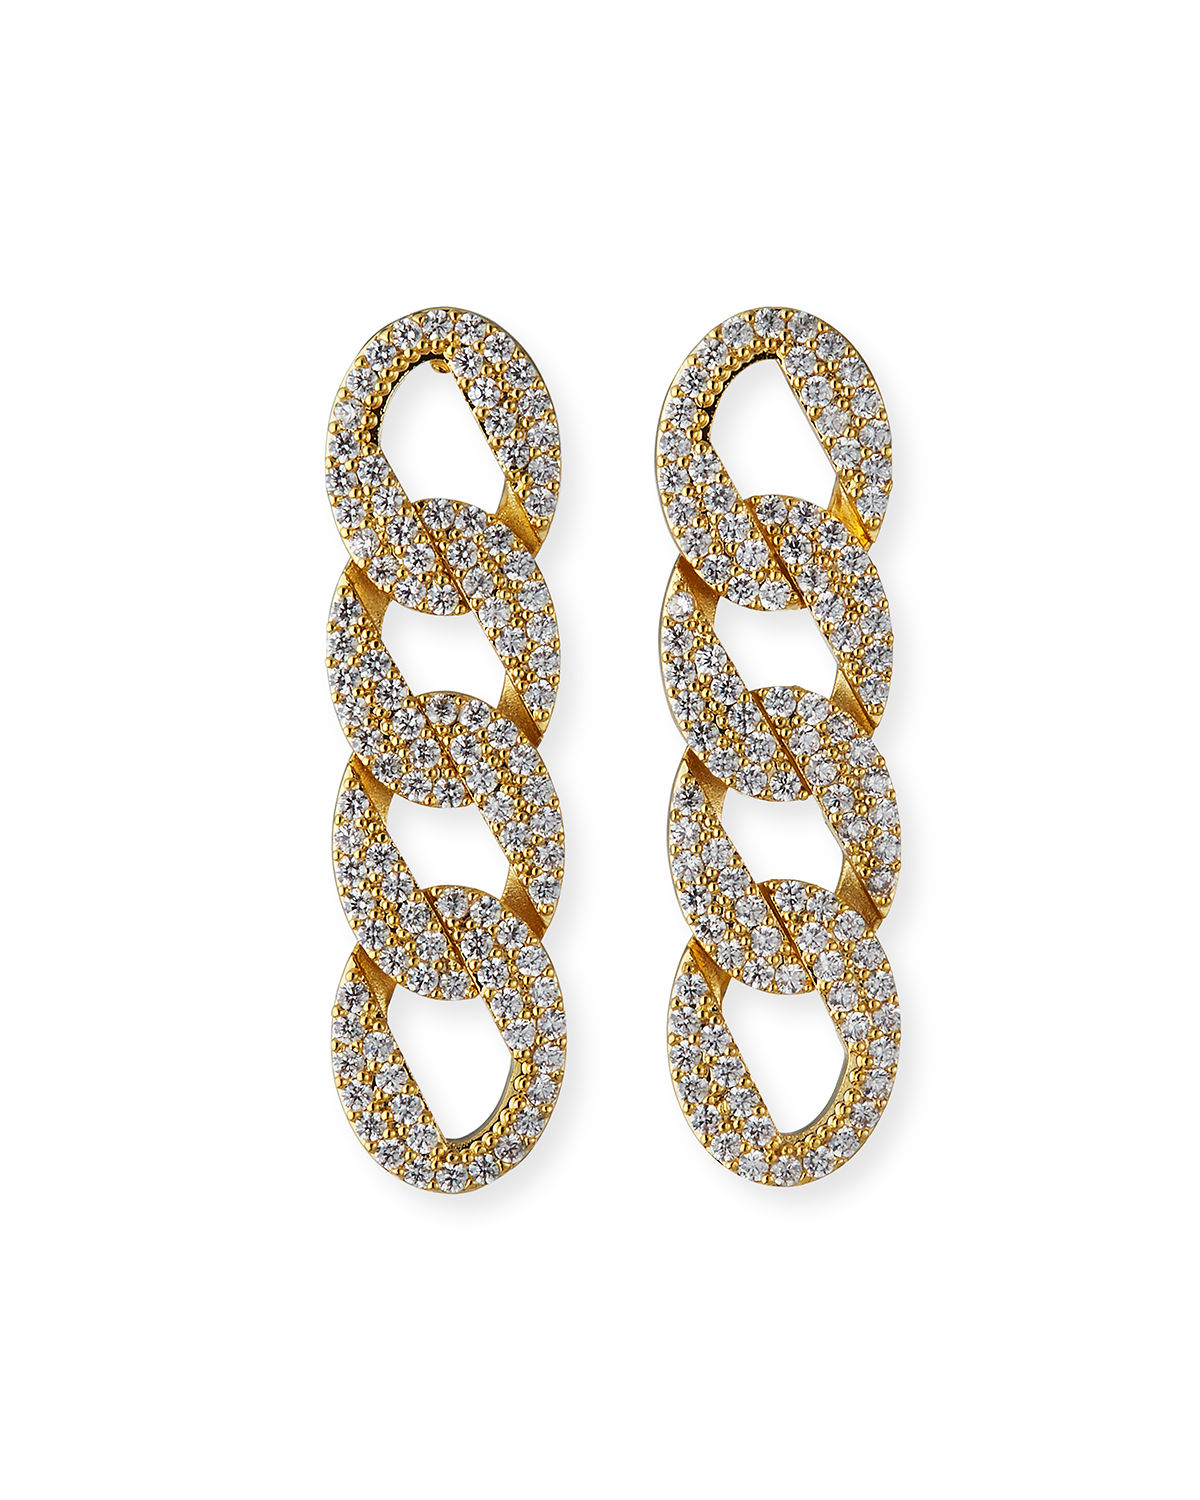 Pave Curb-Chain Earrings